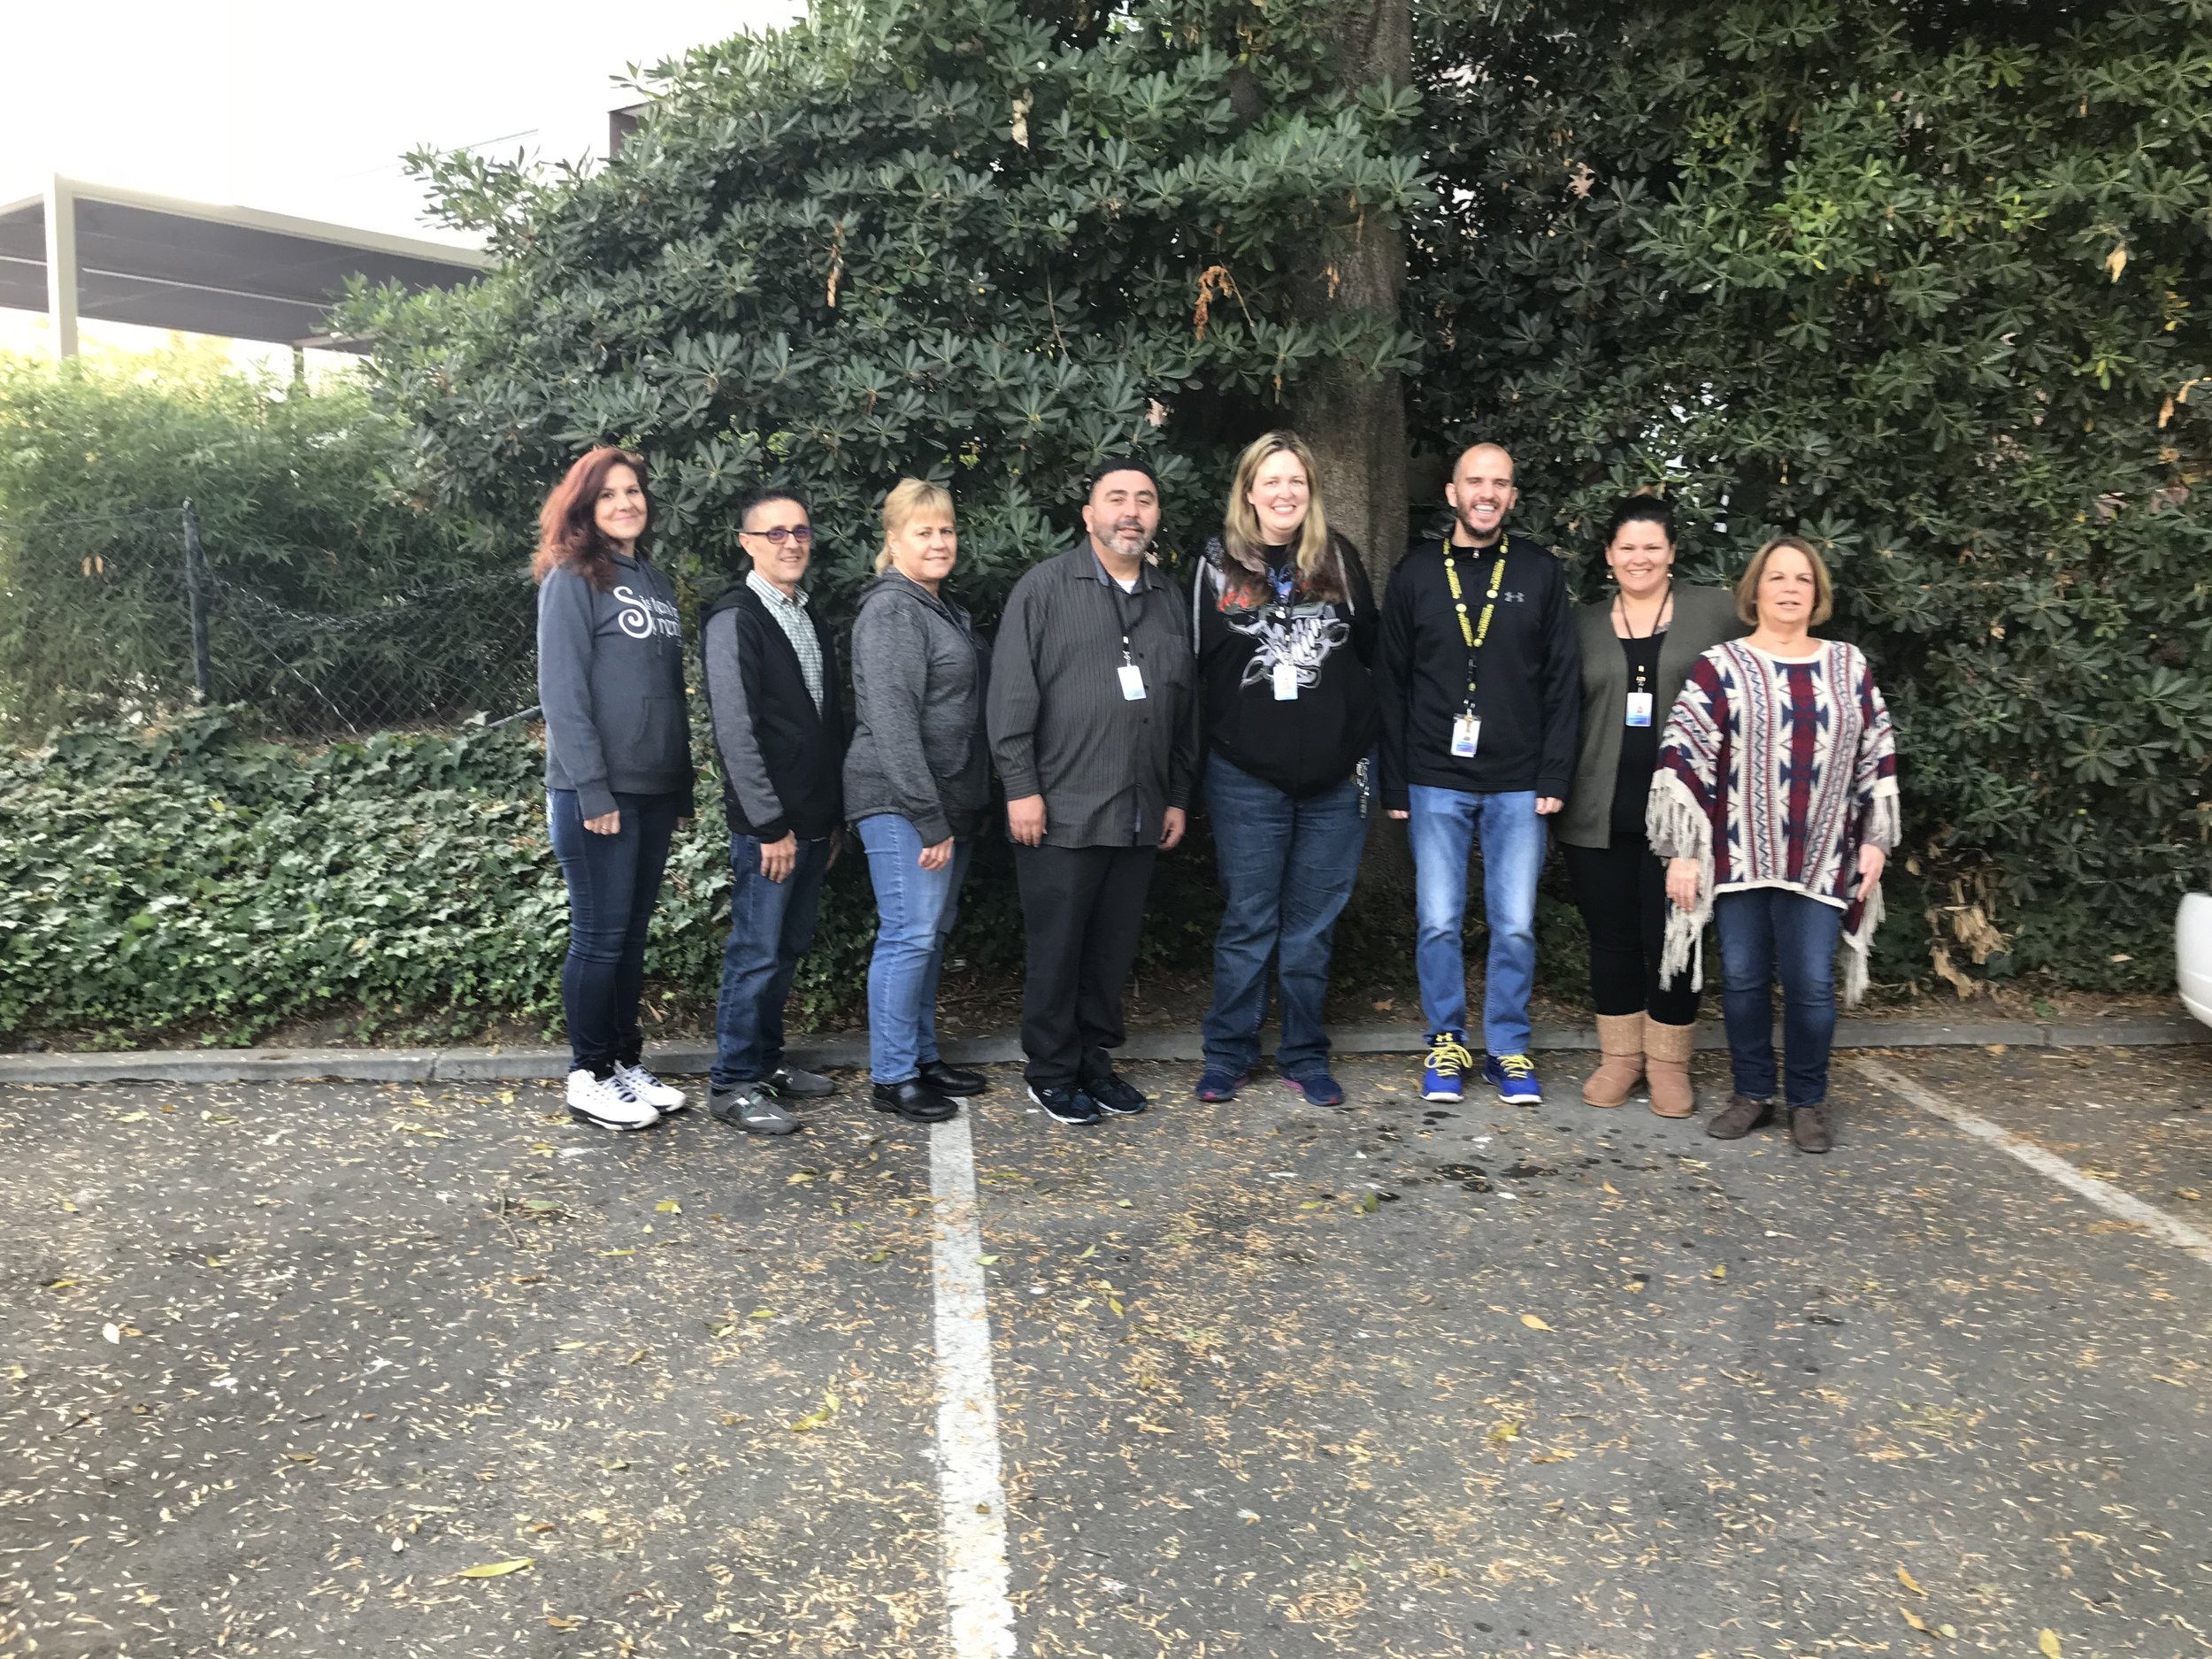 From left to right: Tiffany Cordero (Admin), Joe Iacocca (Program Manager), Amy Brinks (QA), Robert Thomas (Clinician), Jessica Ruddle (Clinician), Eric Covotta (Clinician), Karen Reed (Clinician), and Lori Freitas (Clinical Lead).